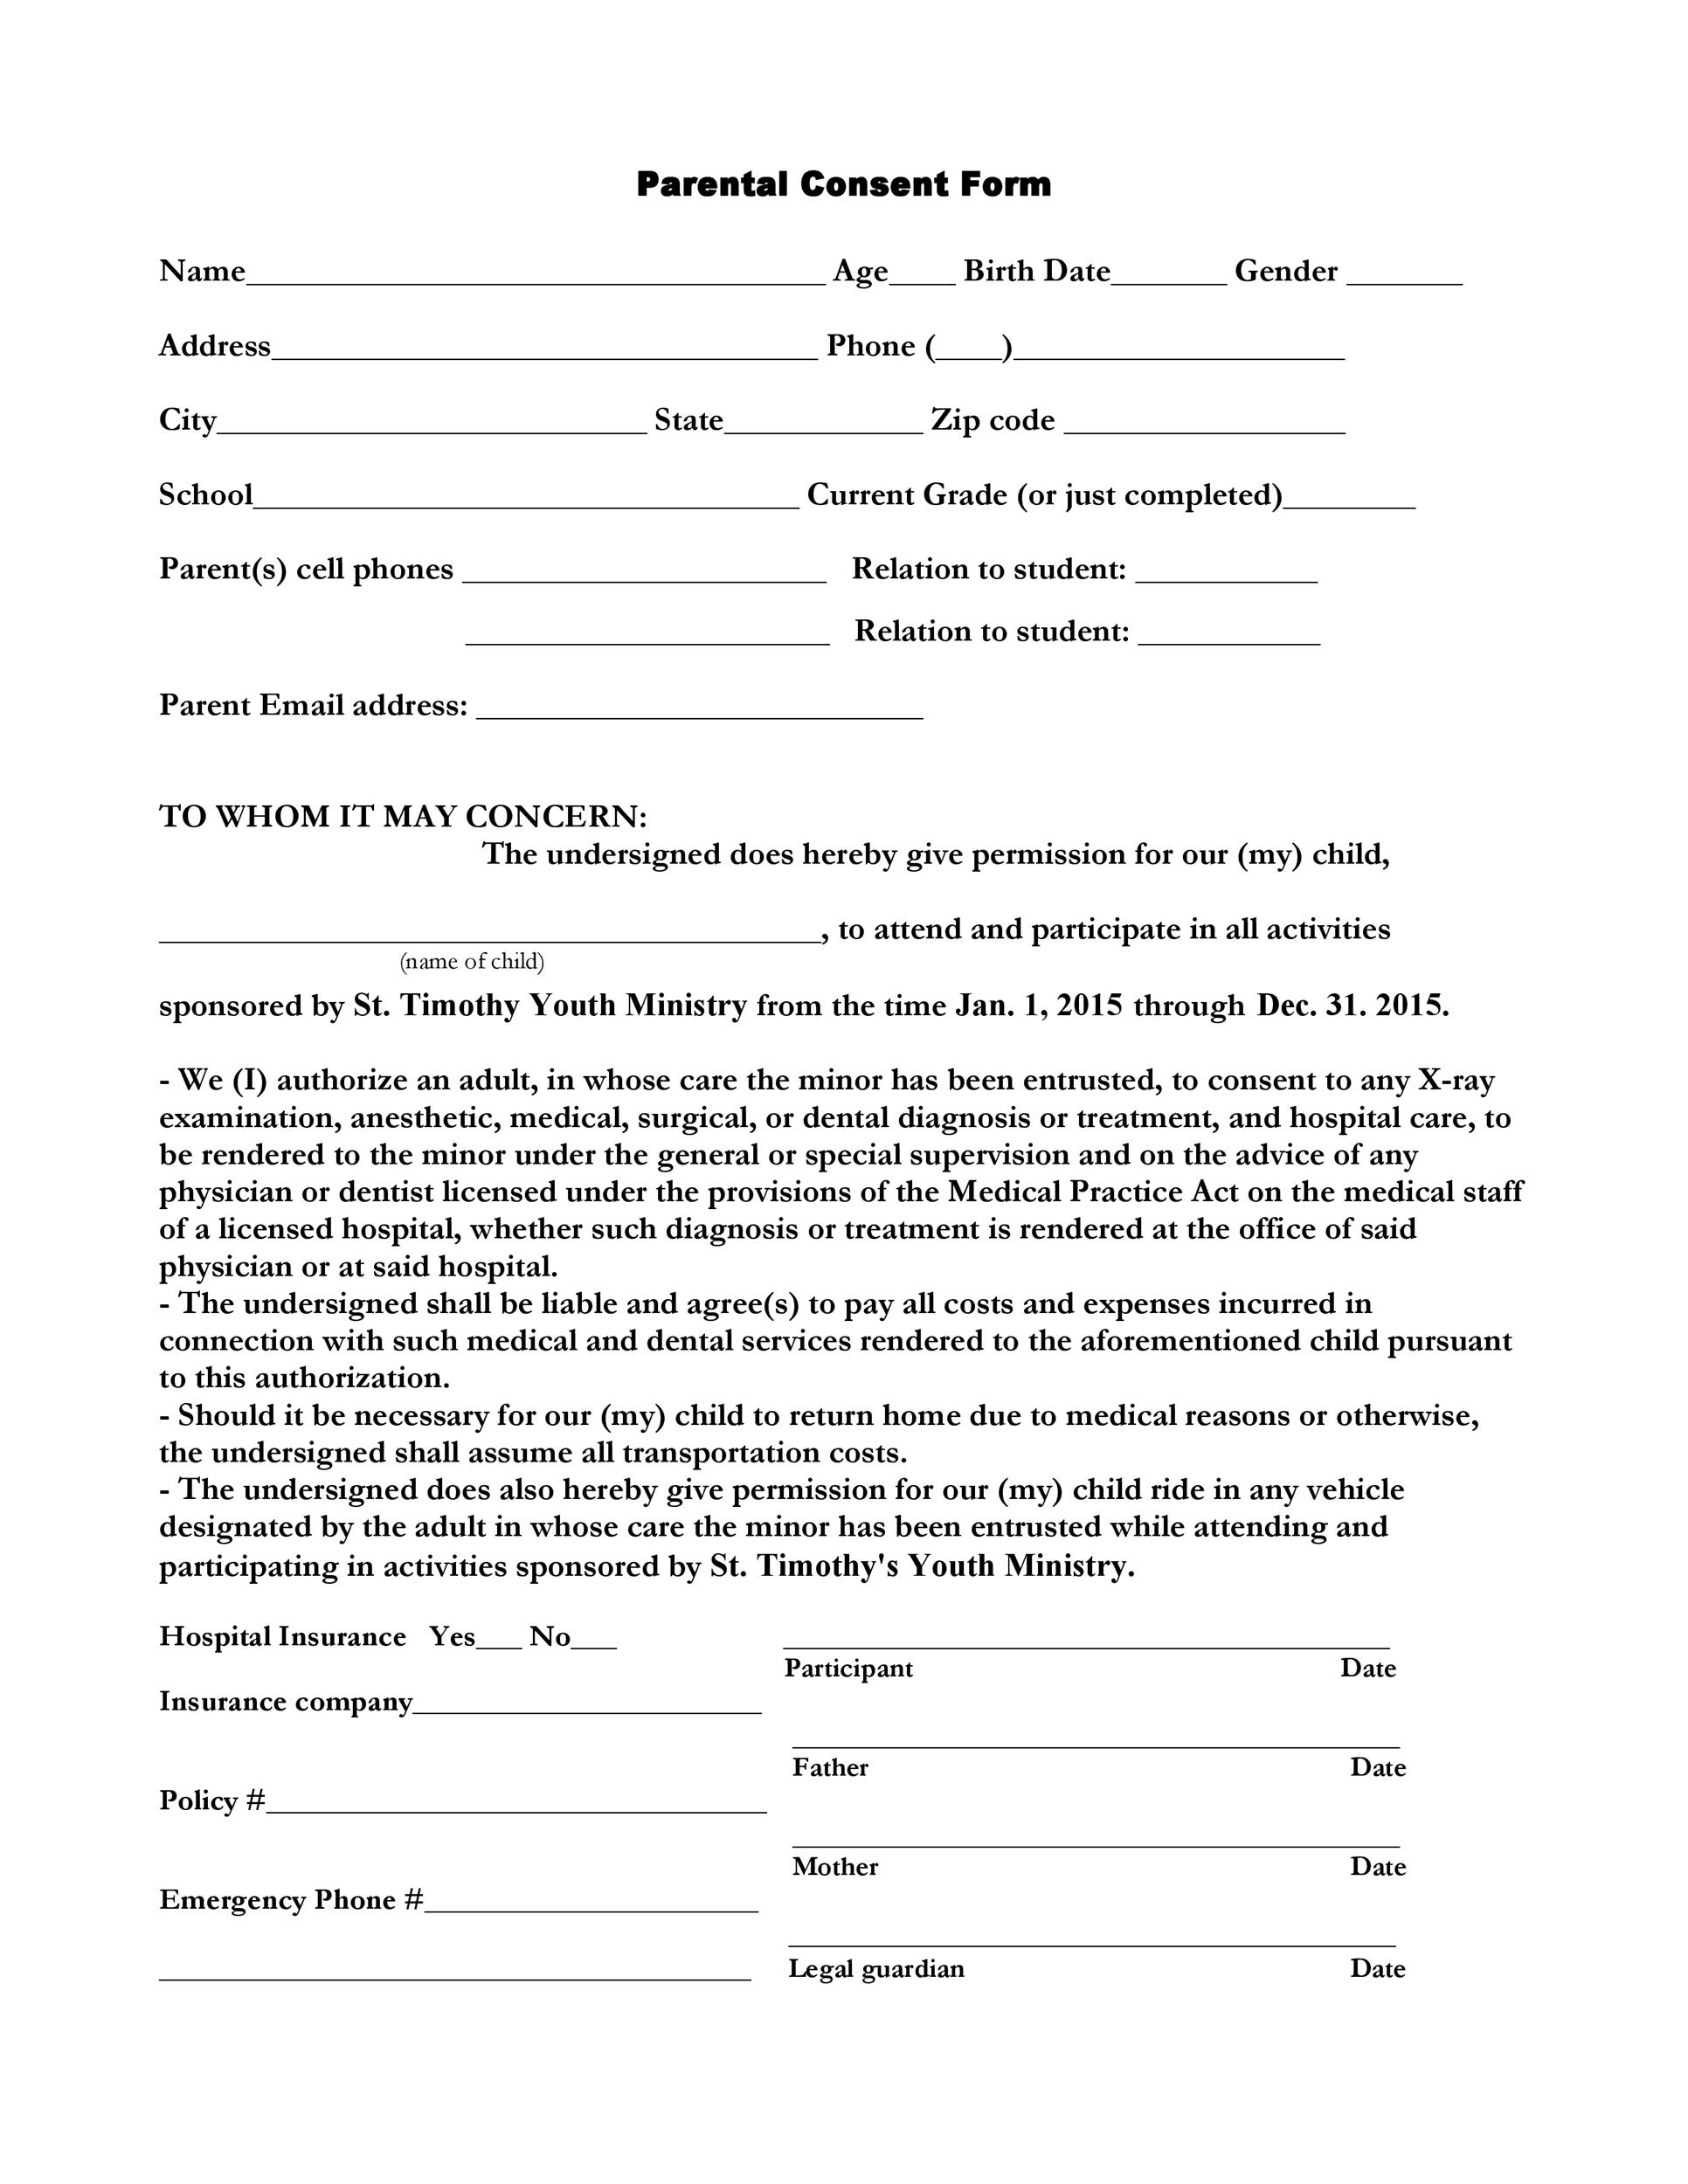 Free parental consent form template 06